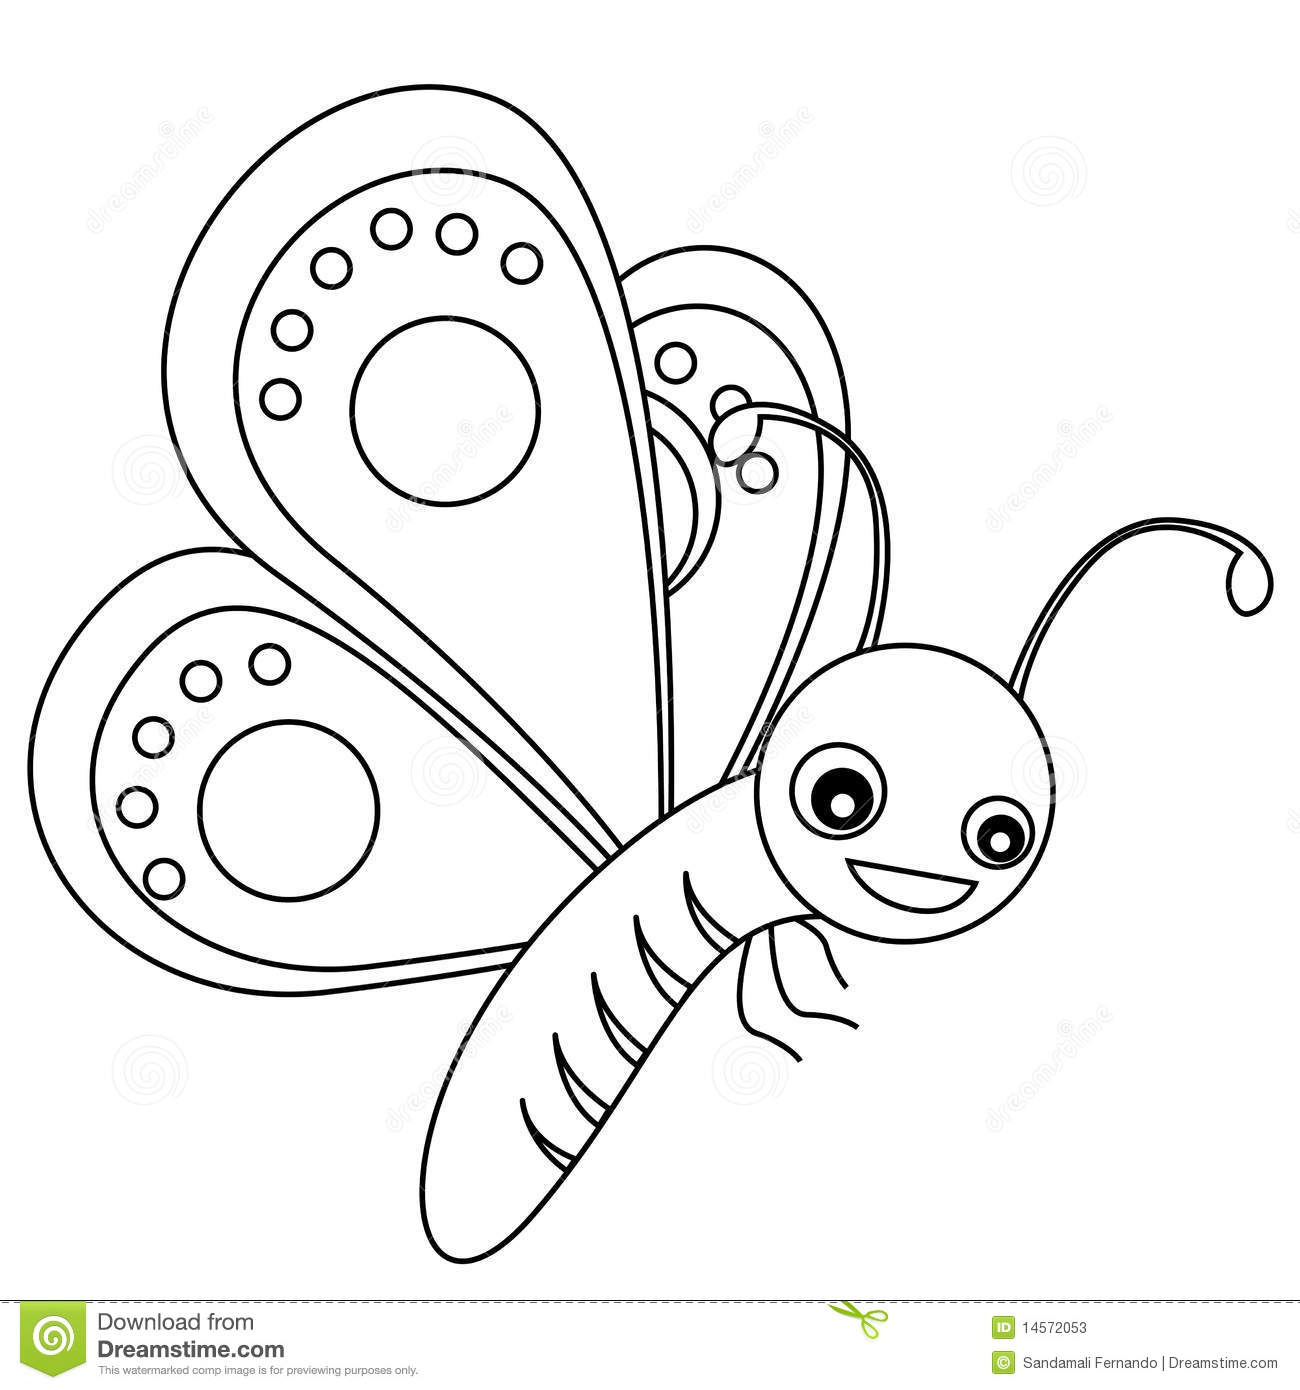 Butterfly Lineart Stock Vector Illustration Of Colouring